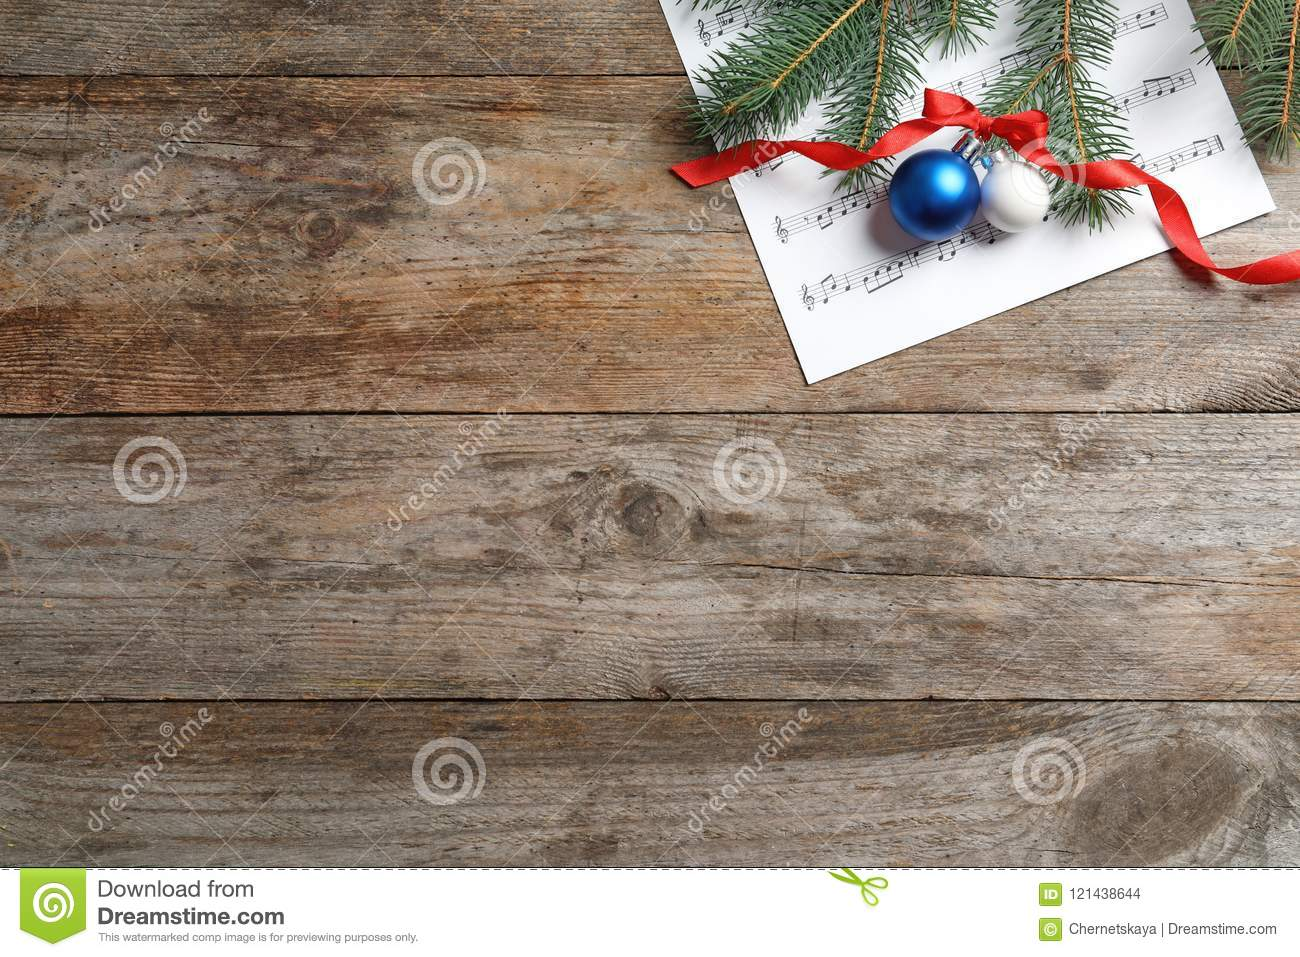 Flat lay composition with Christmas decorations and music sheet